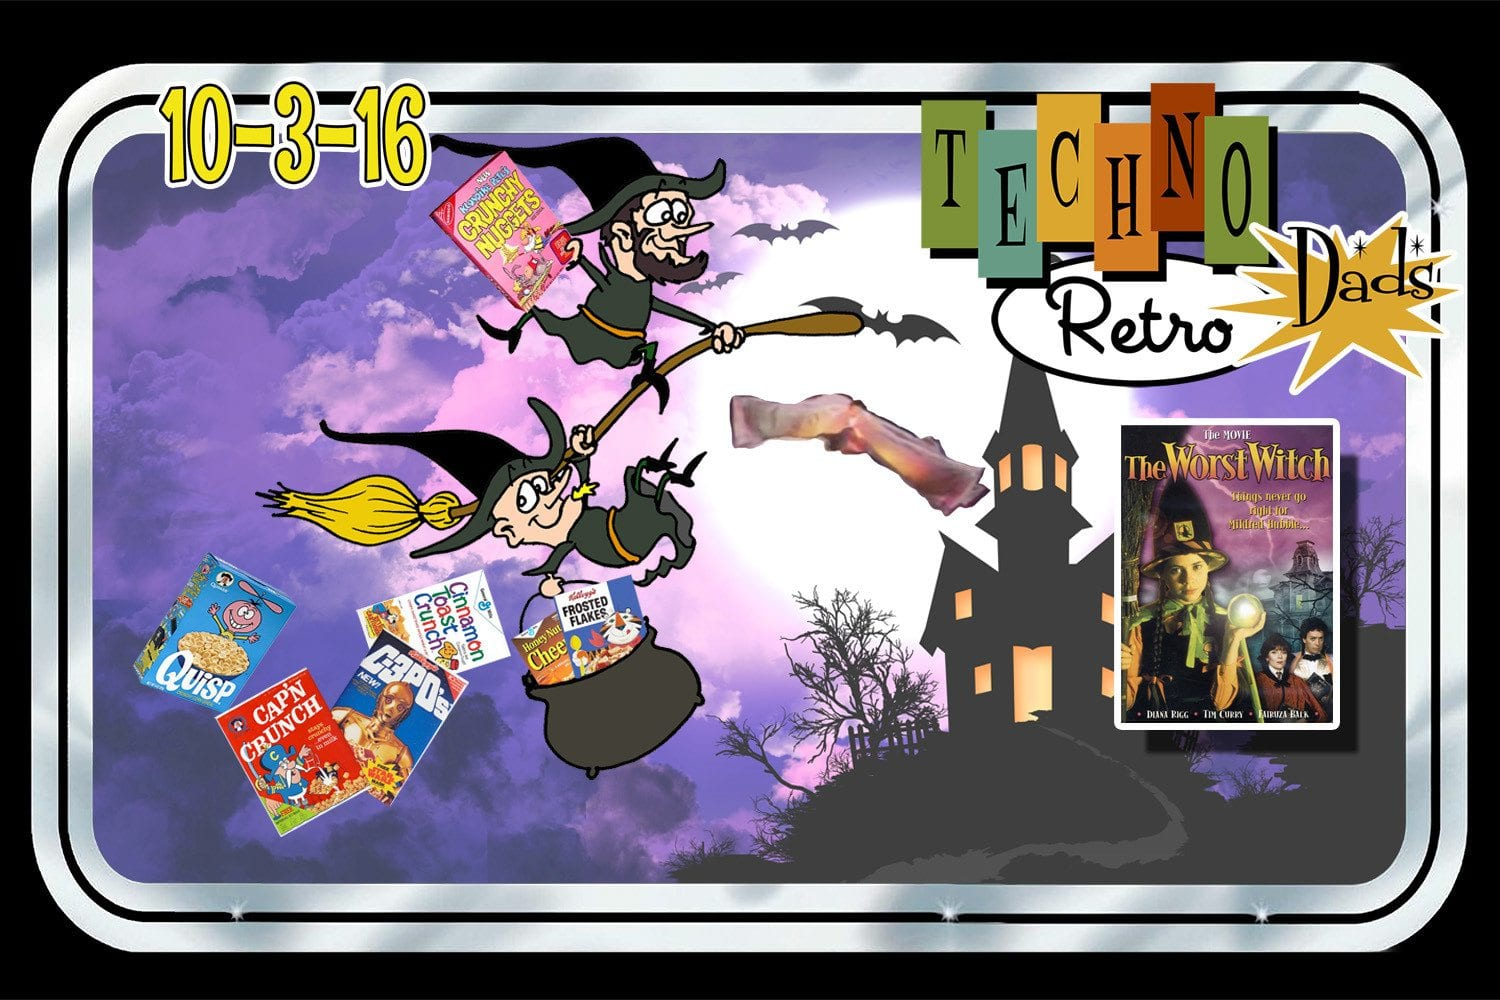 TechnoRetro Dads: Which Witch Watches The Worst Witch